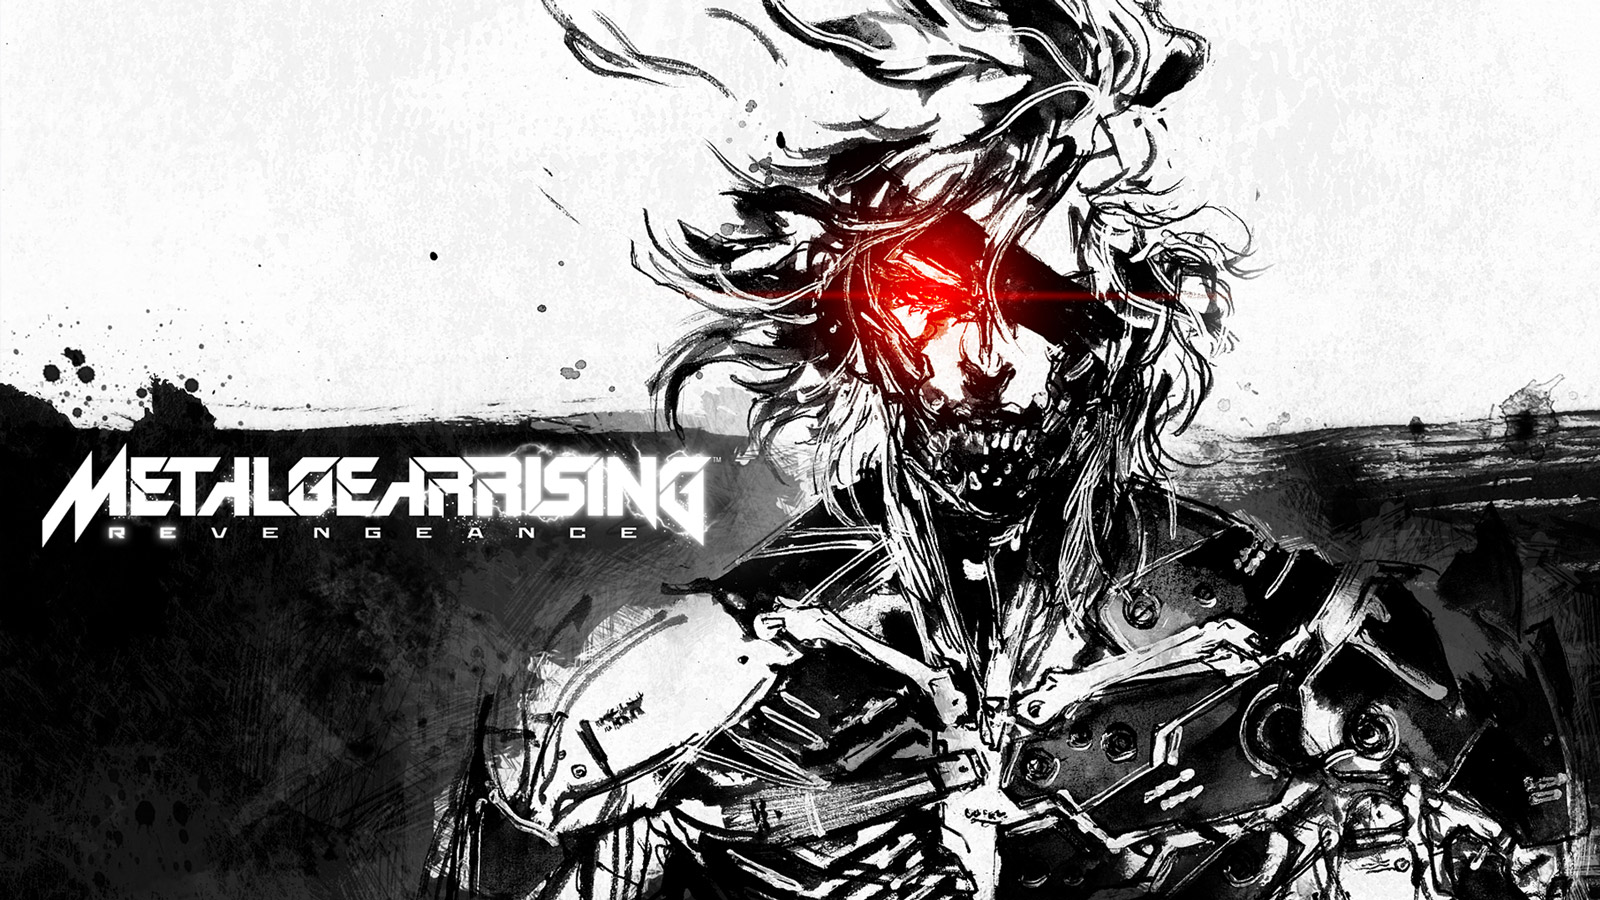 Metal gear revengeance art